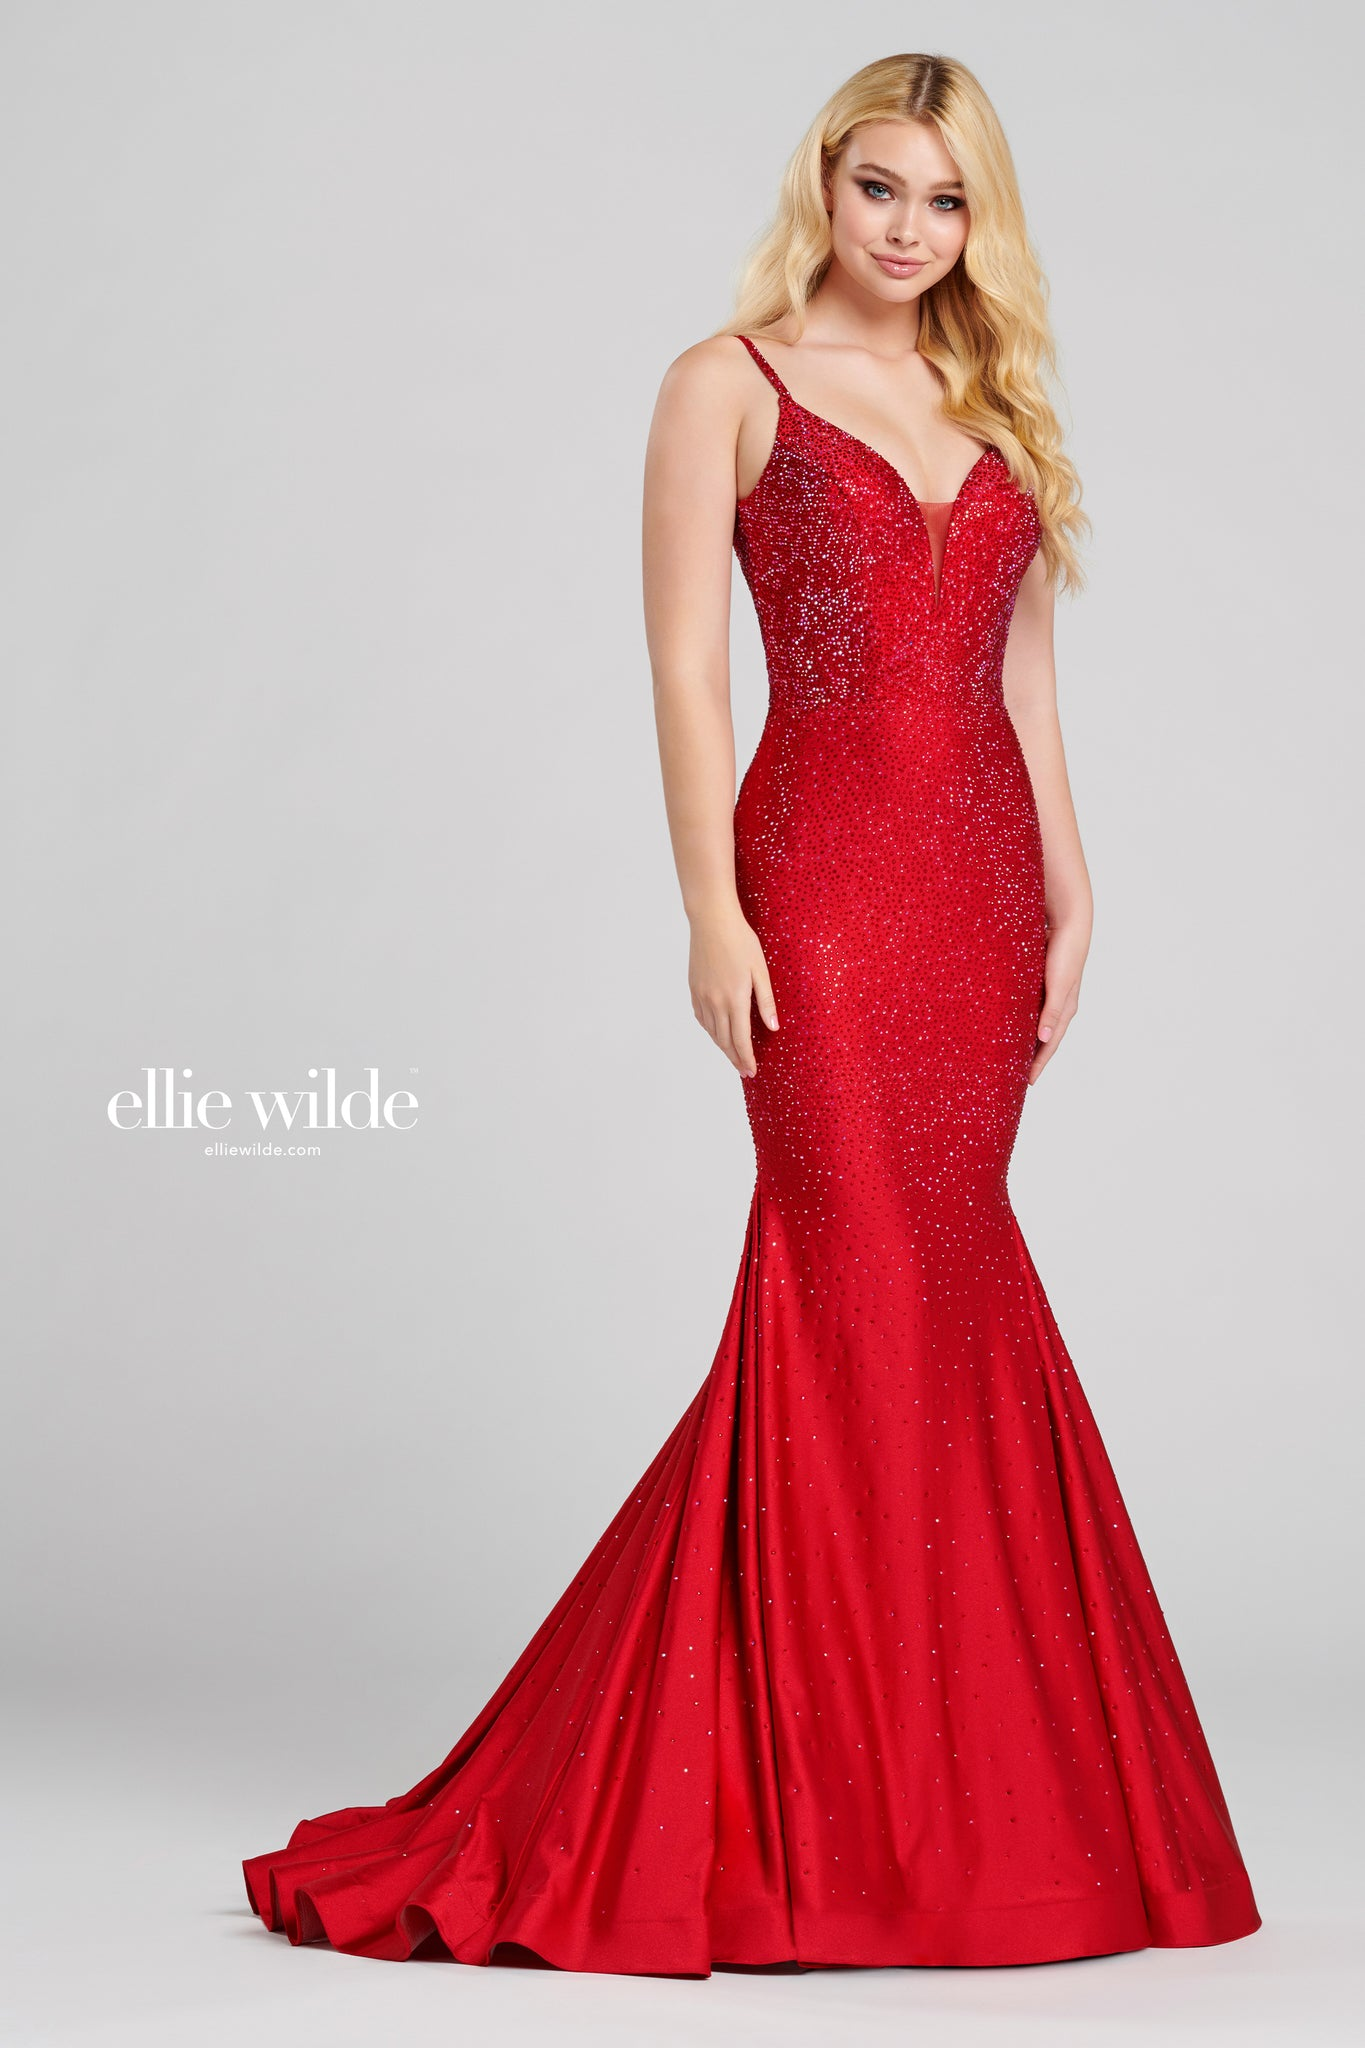 Ellie Wilde Embellished Red Evening Dress